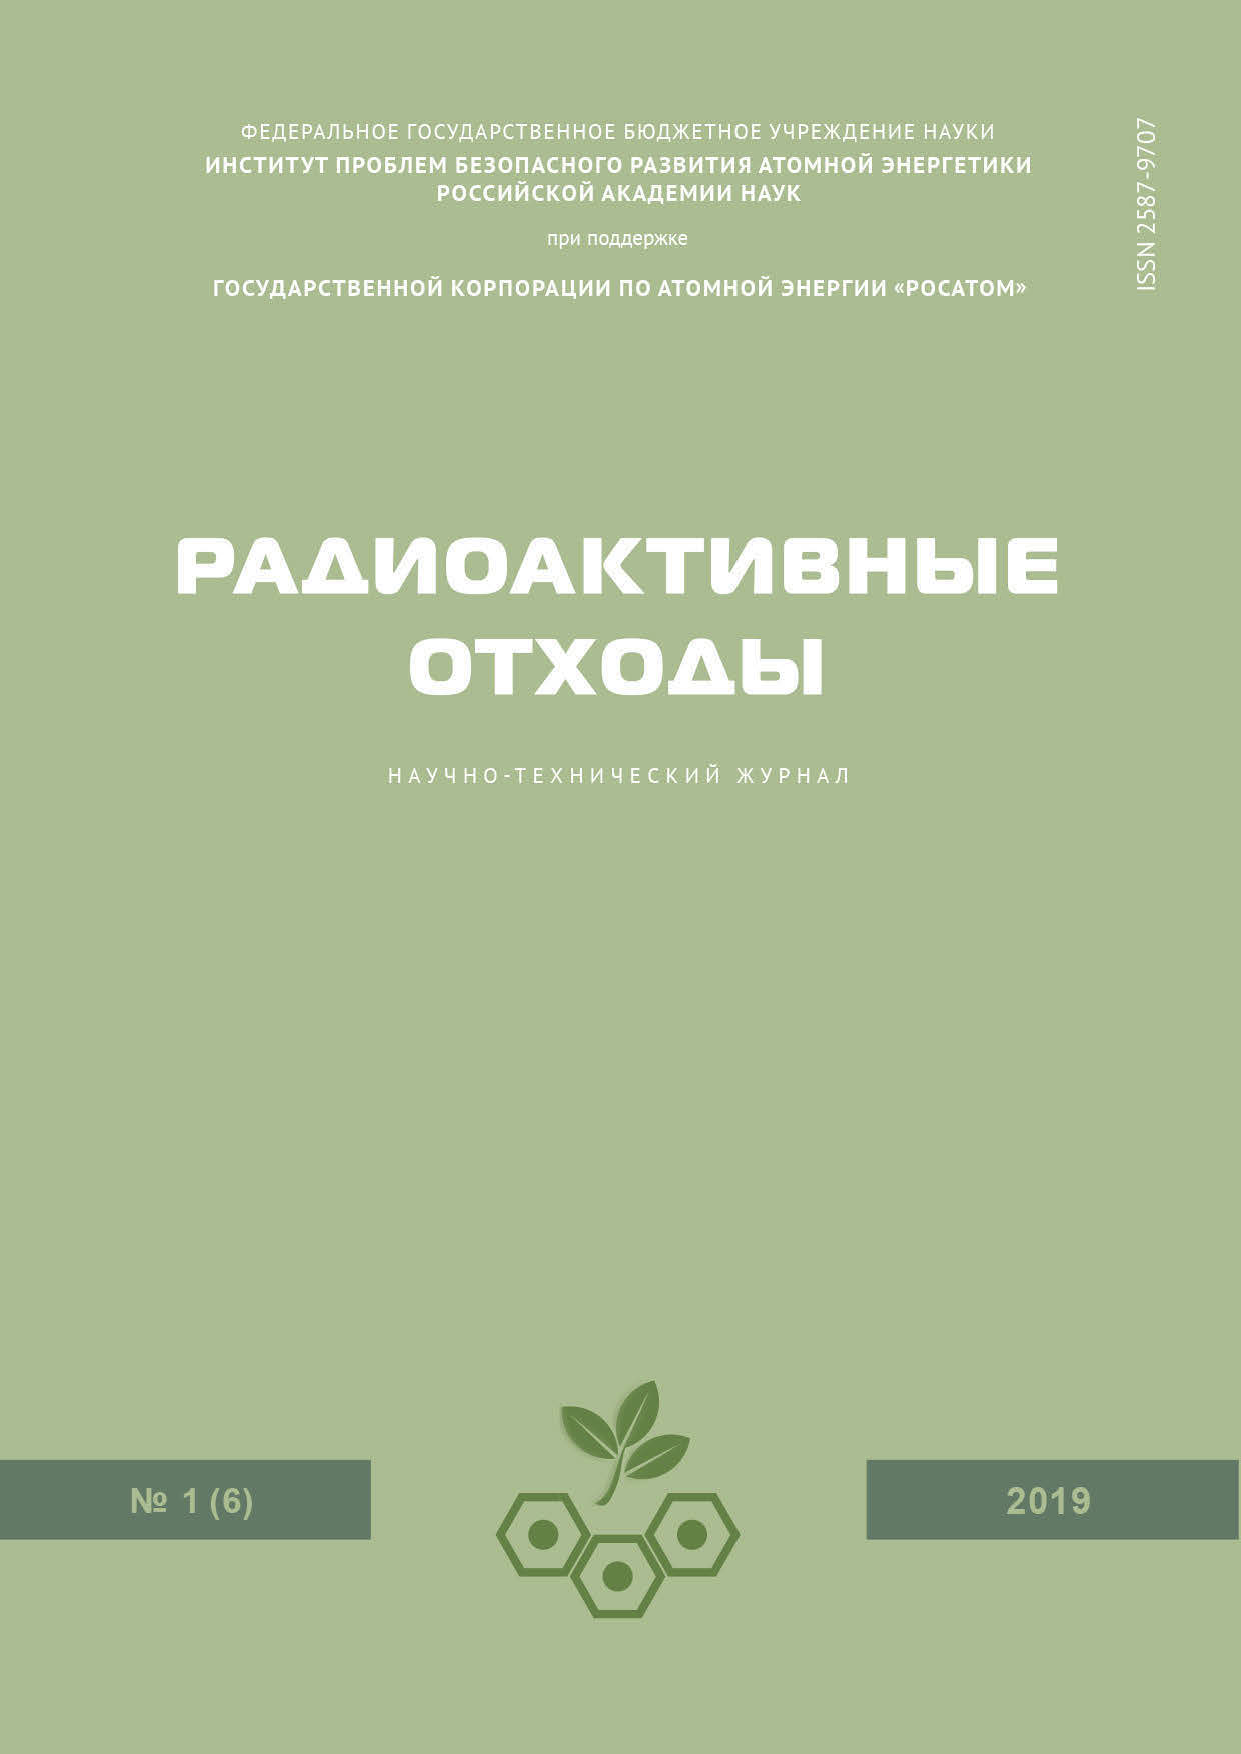 № 1(6), March 2019